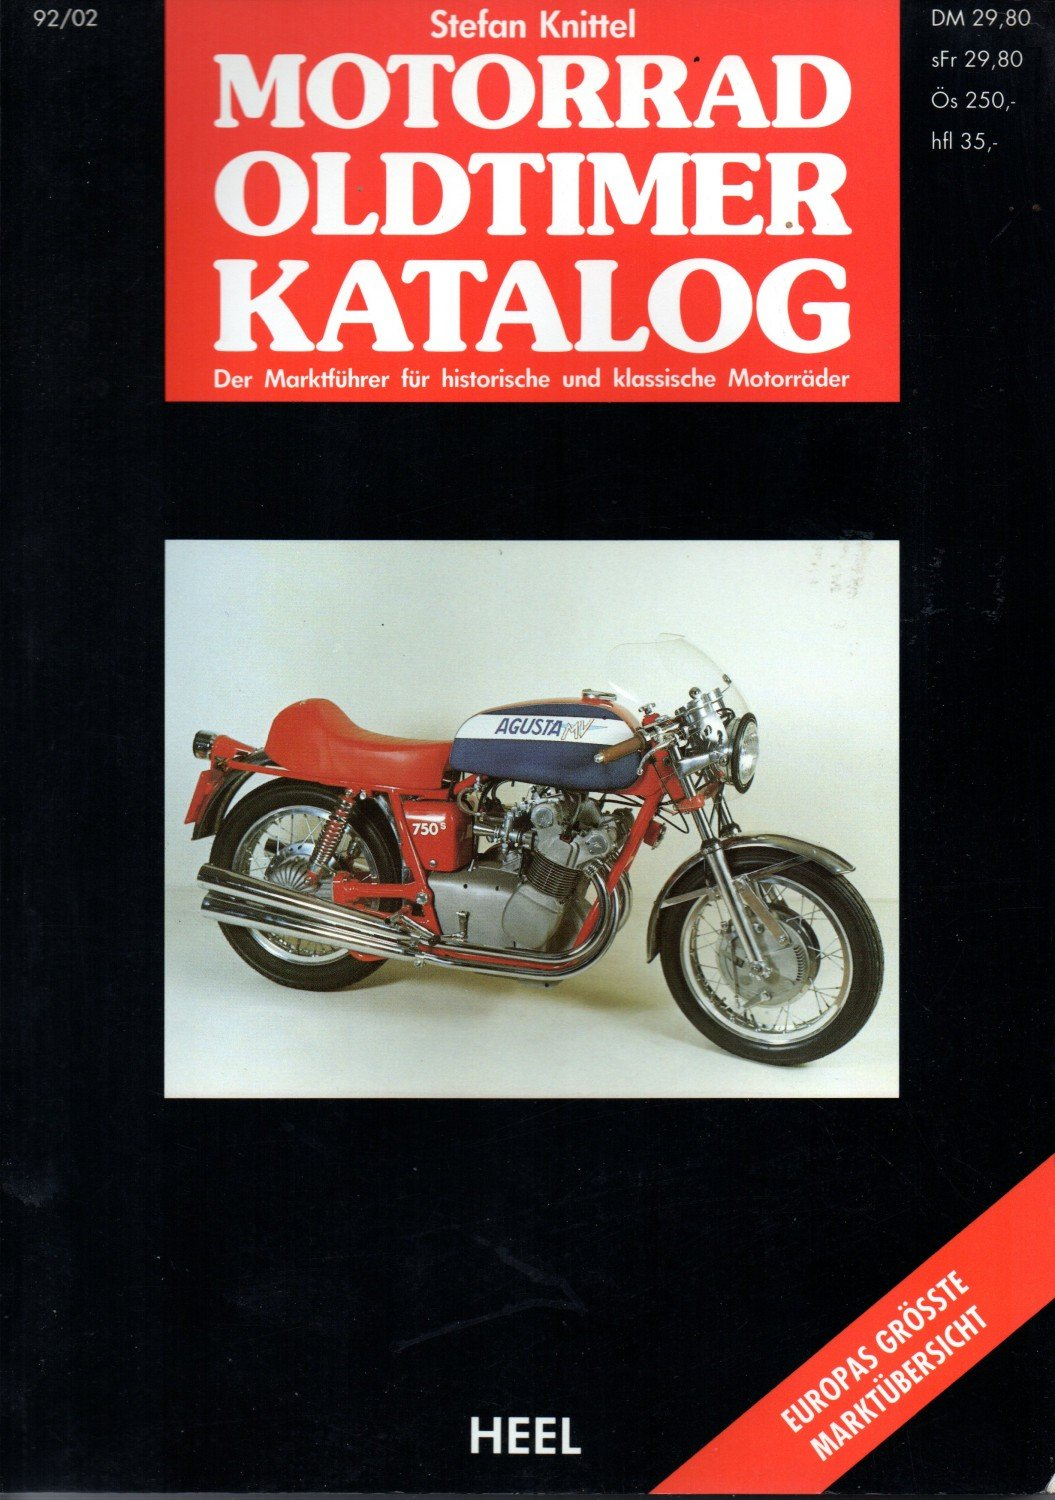 isbn 3893652620 motorrad oldtimer katalog neu. Black Bedroom Furniture Sets. Home Design Ideas